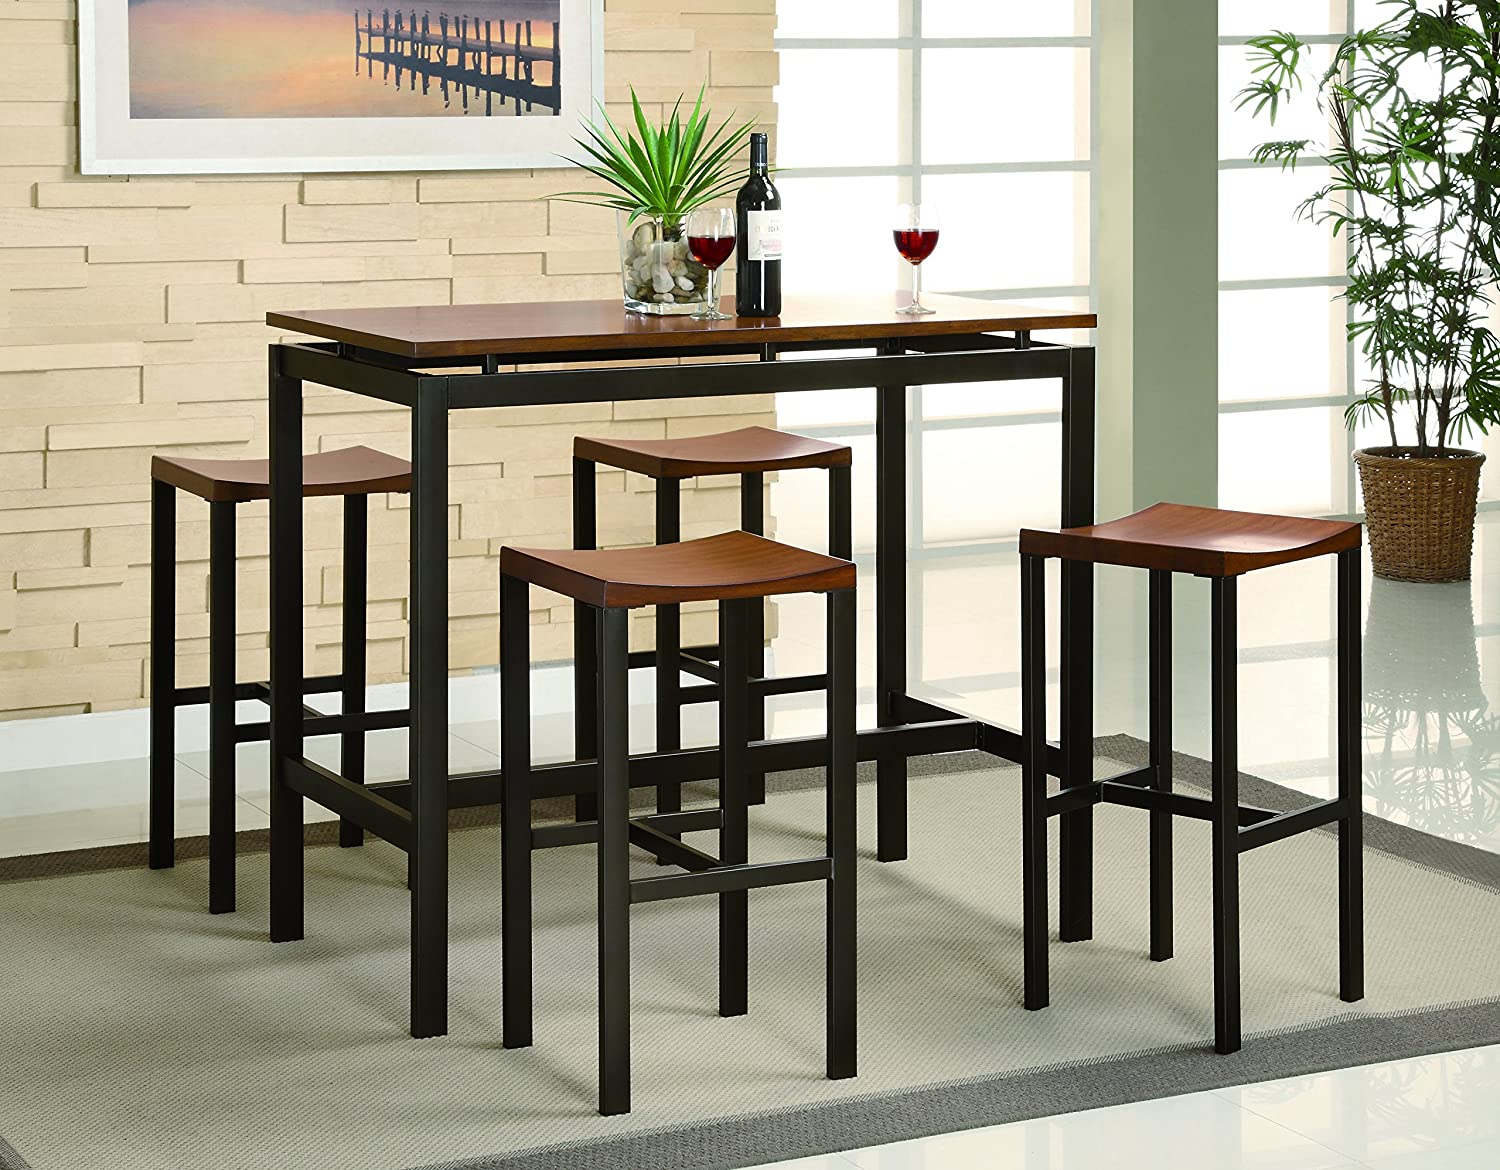 Coaster Home Furnishings 150097 5-Piece Casual Dining Room Set - Black